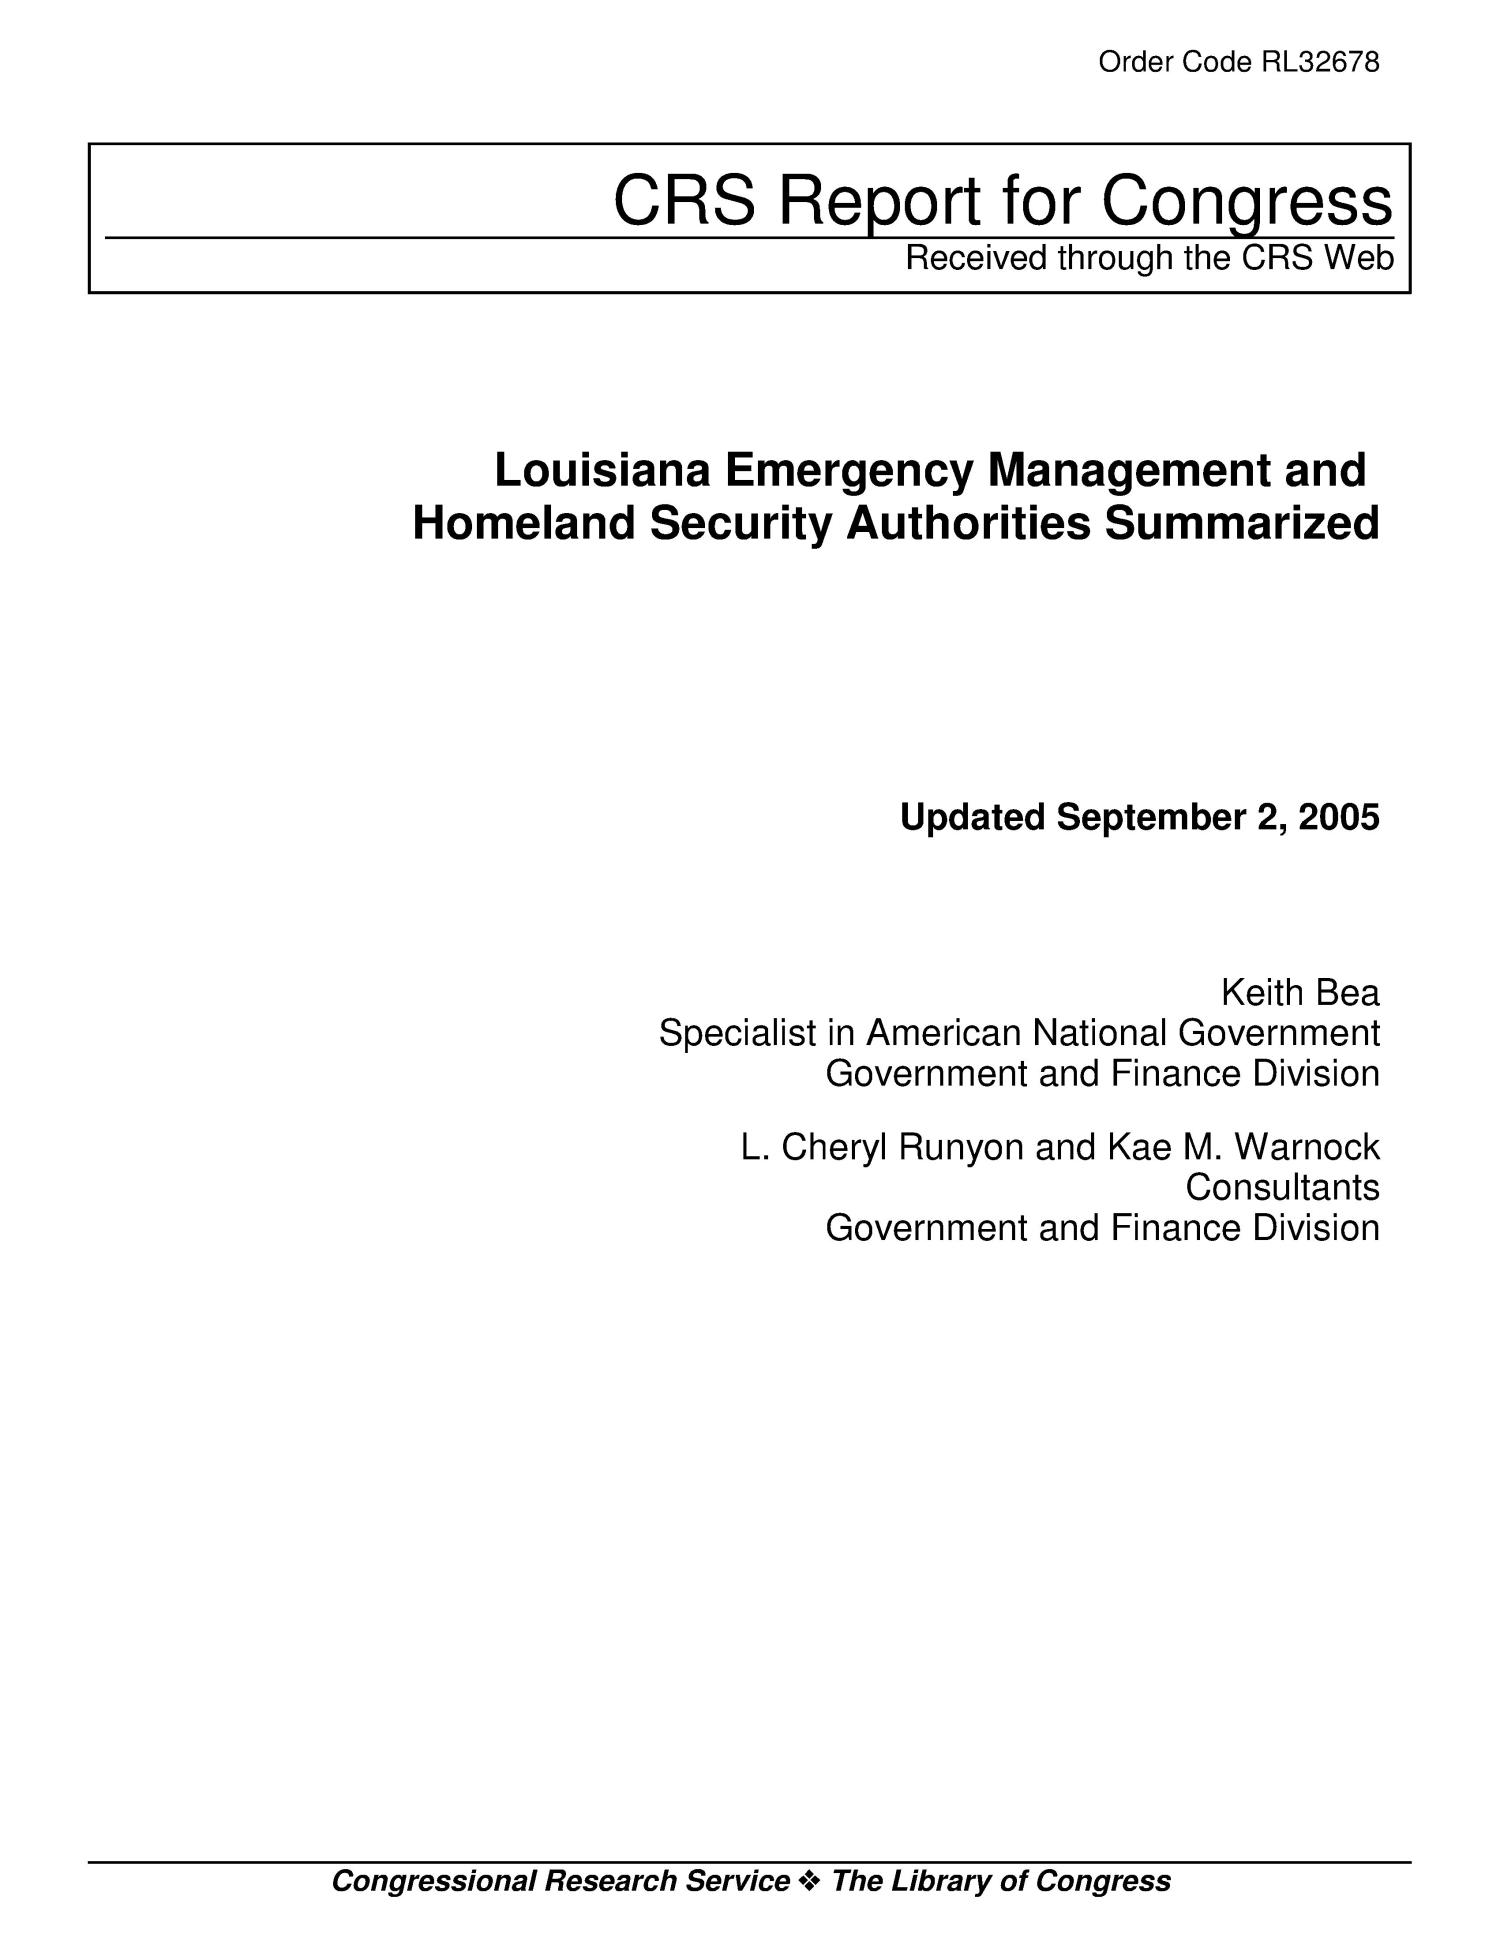 Louisiana Emergency Management and Homeland Security Authorities Summarized                                                                                                      [Sequence #]: 1 of 12